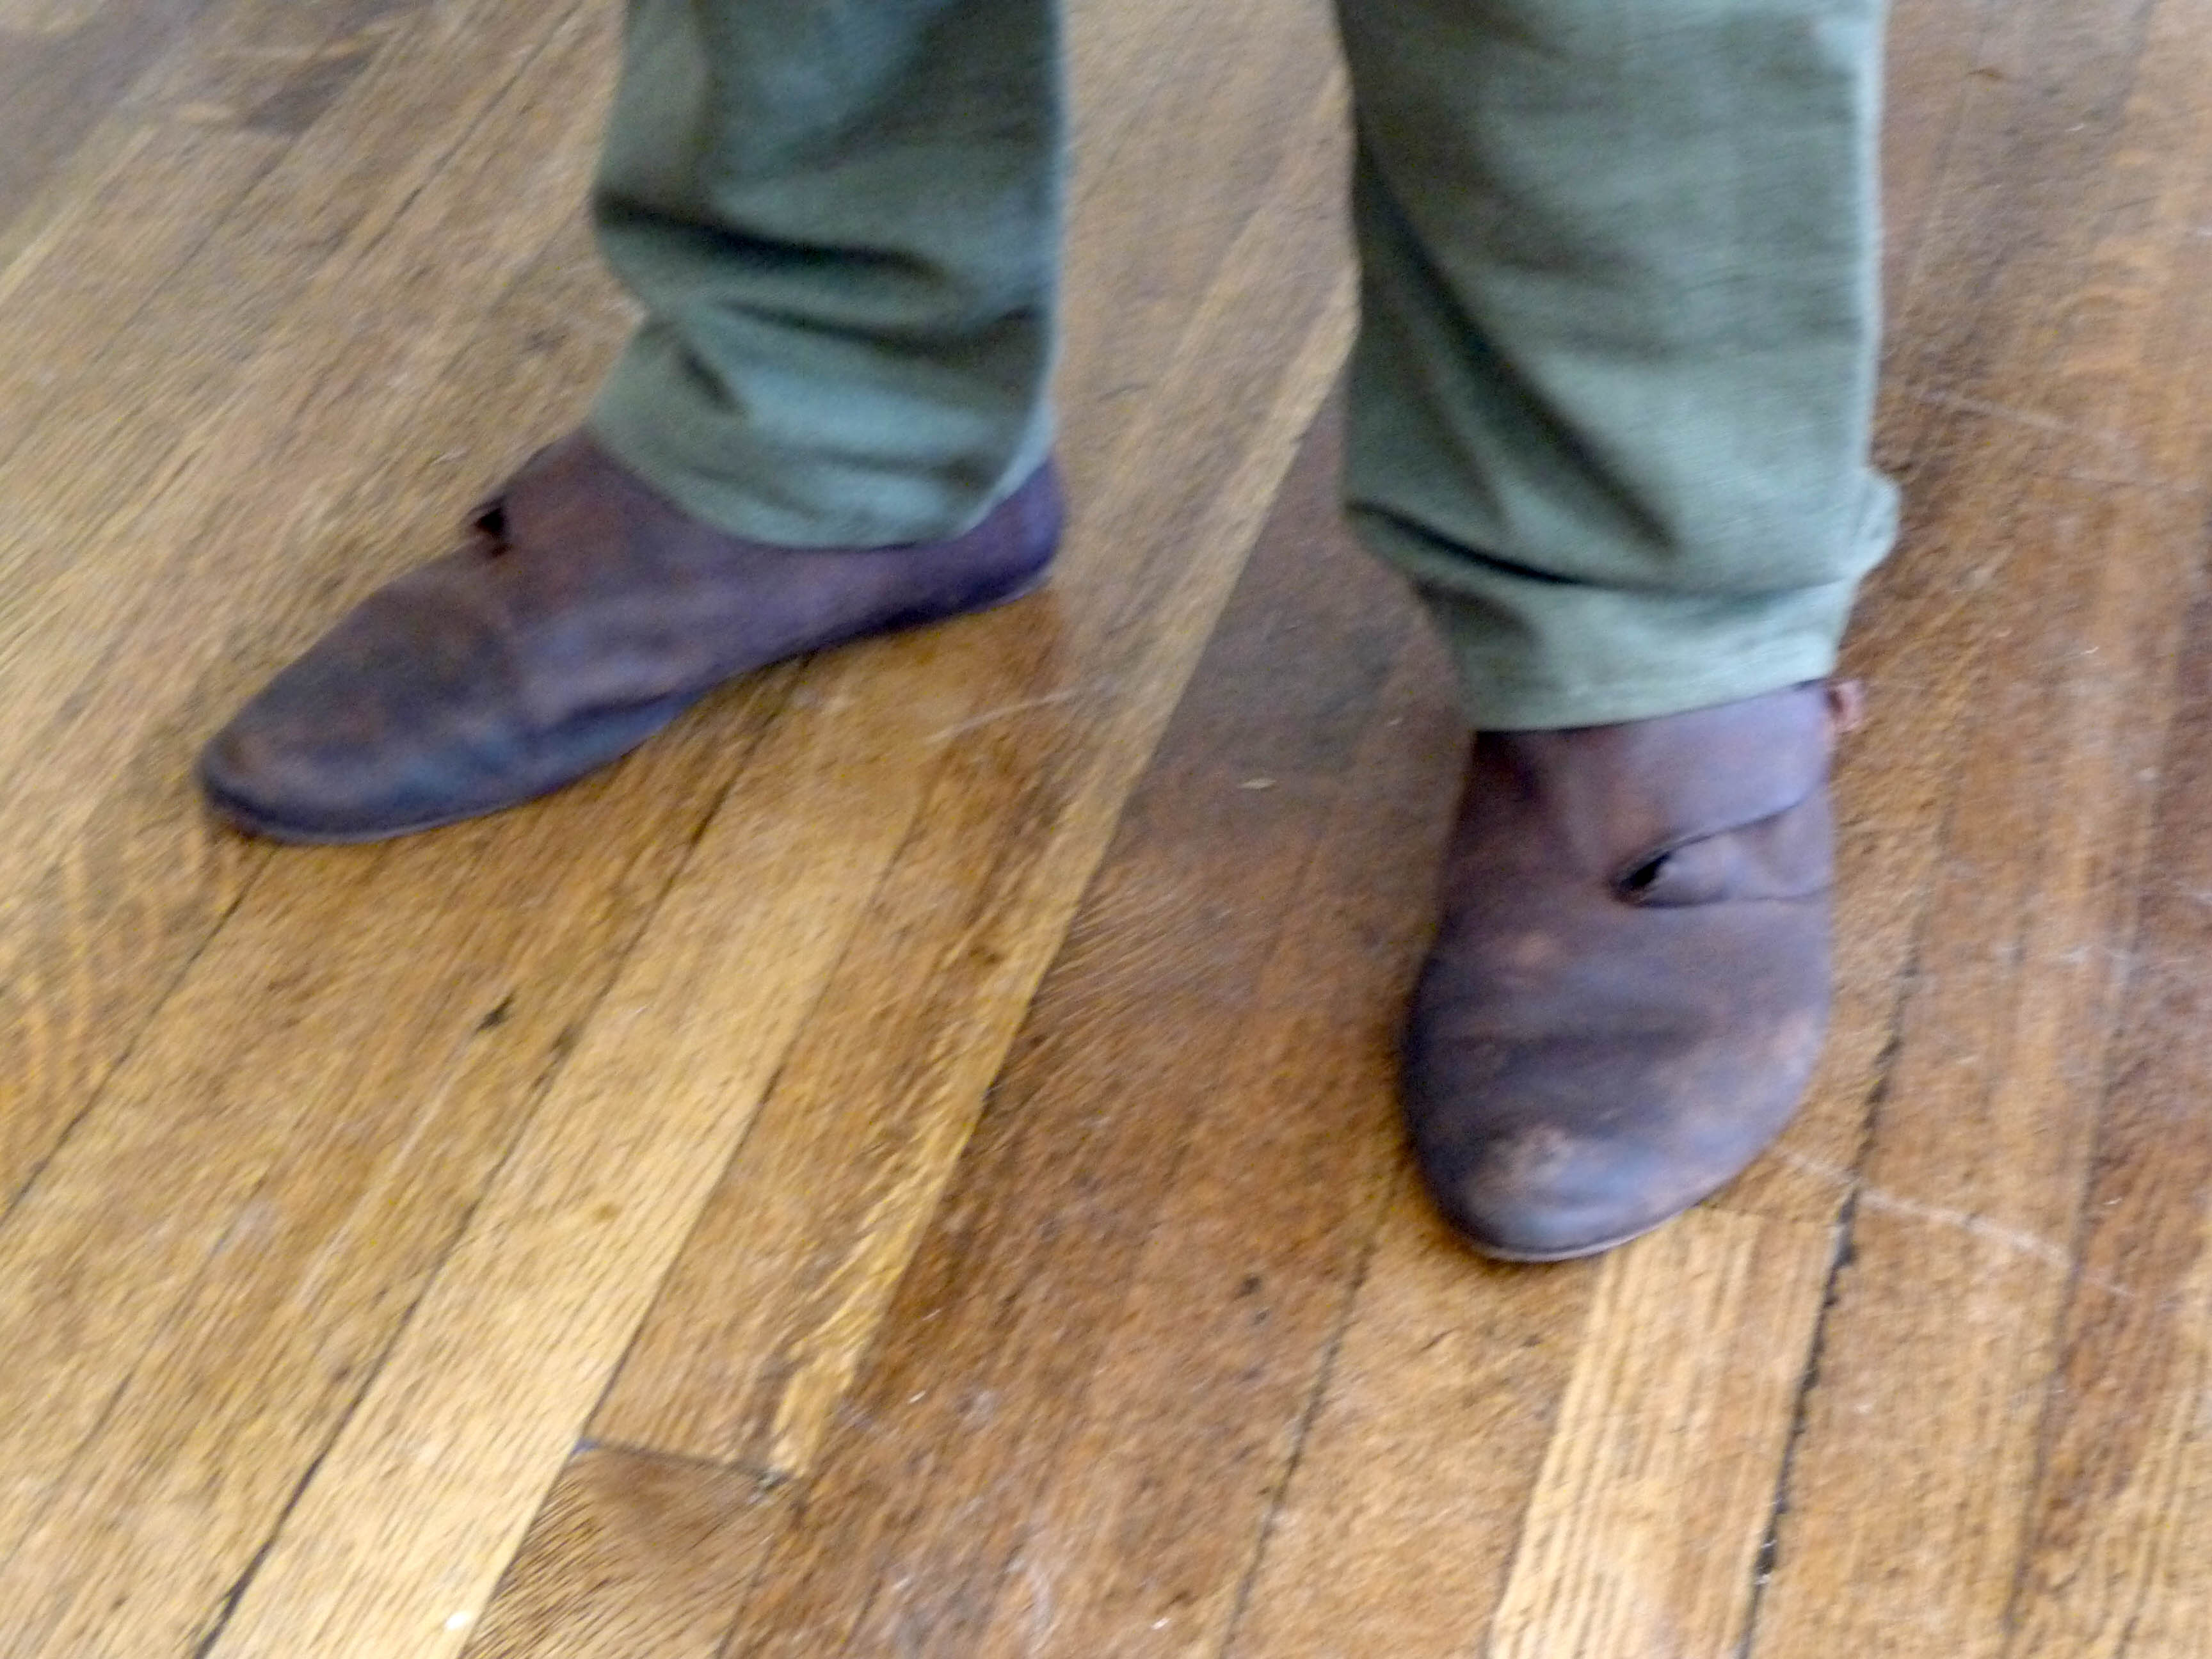 these are handmade shoes in a style a Viking might have worn